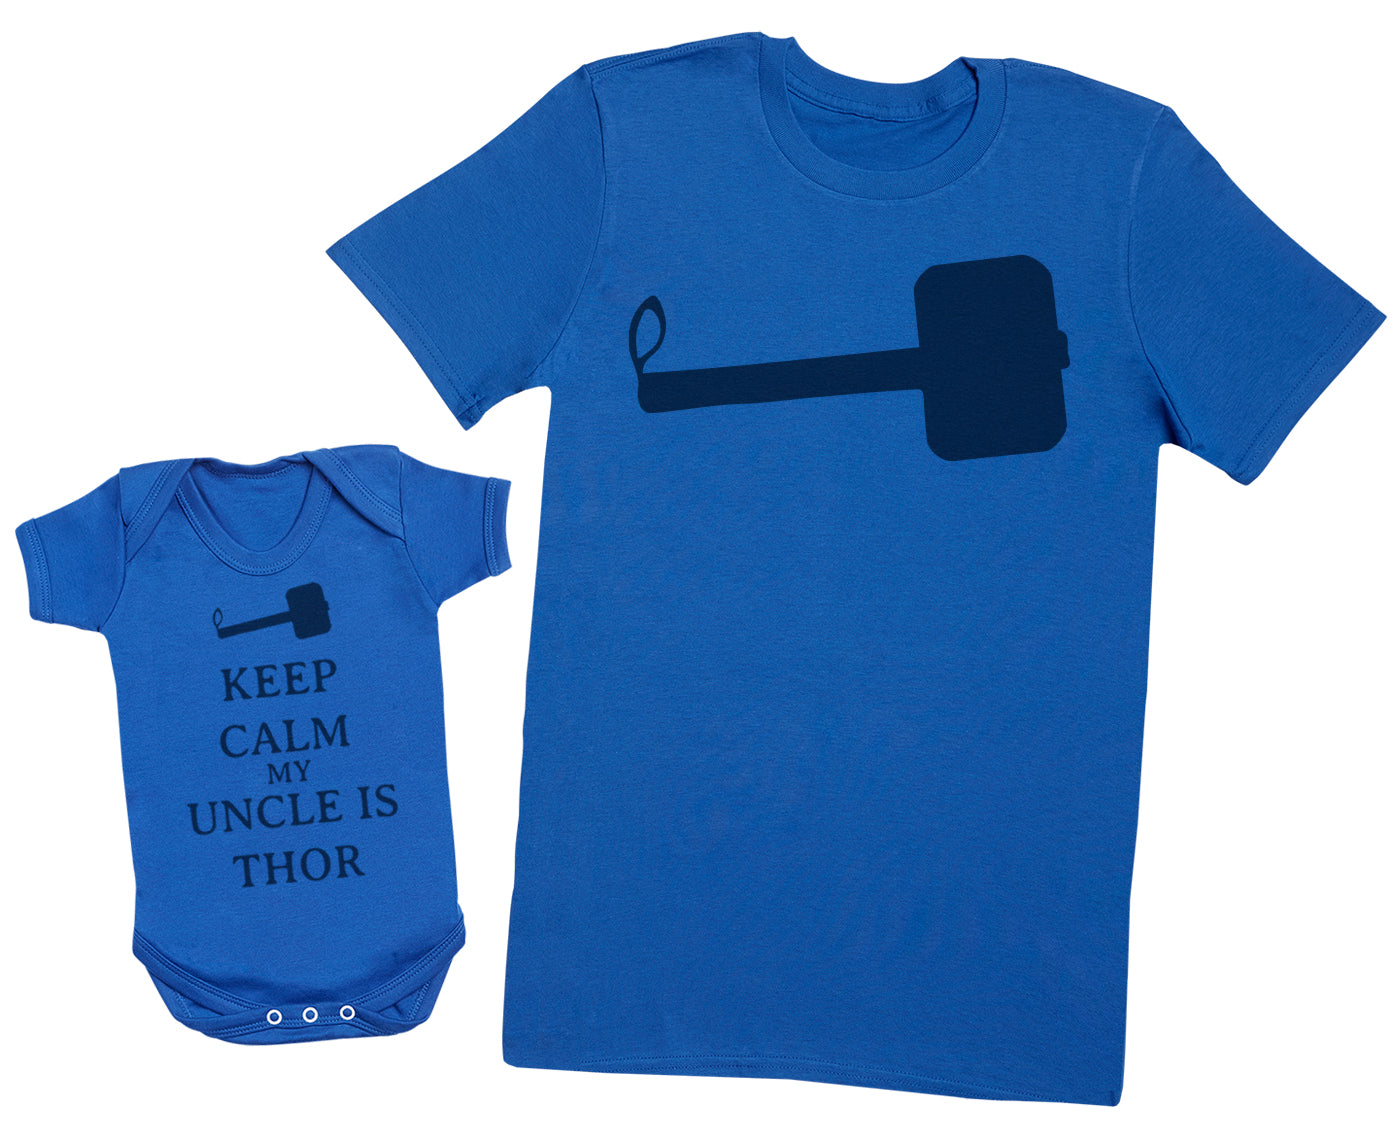 Keep Calm My Uncle Is Thor Matching Uncle Baby Gift Set - Mens T Shirt & Baby Bodysuit